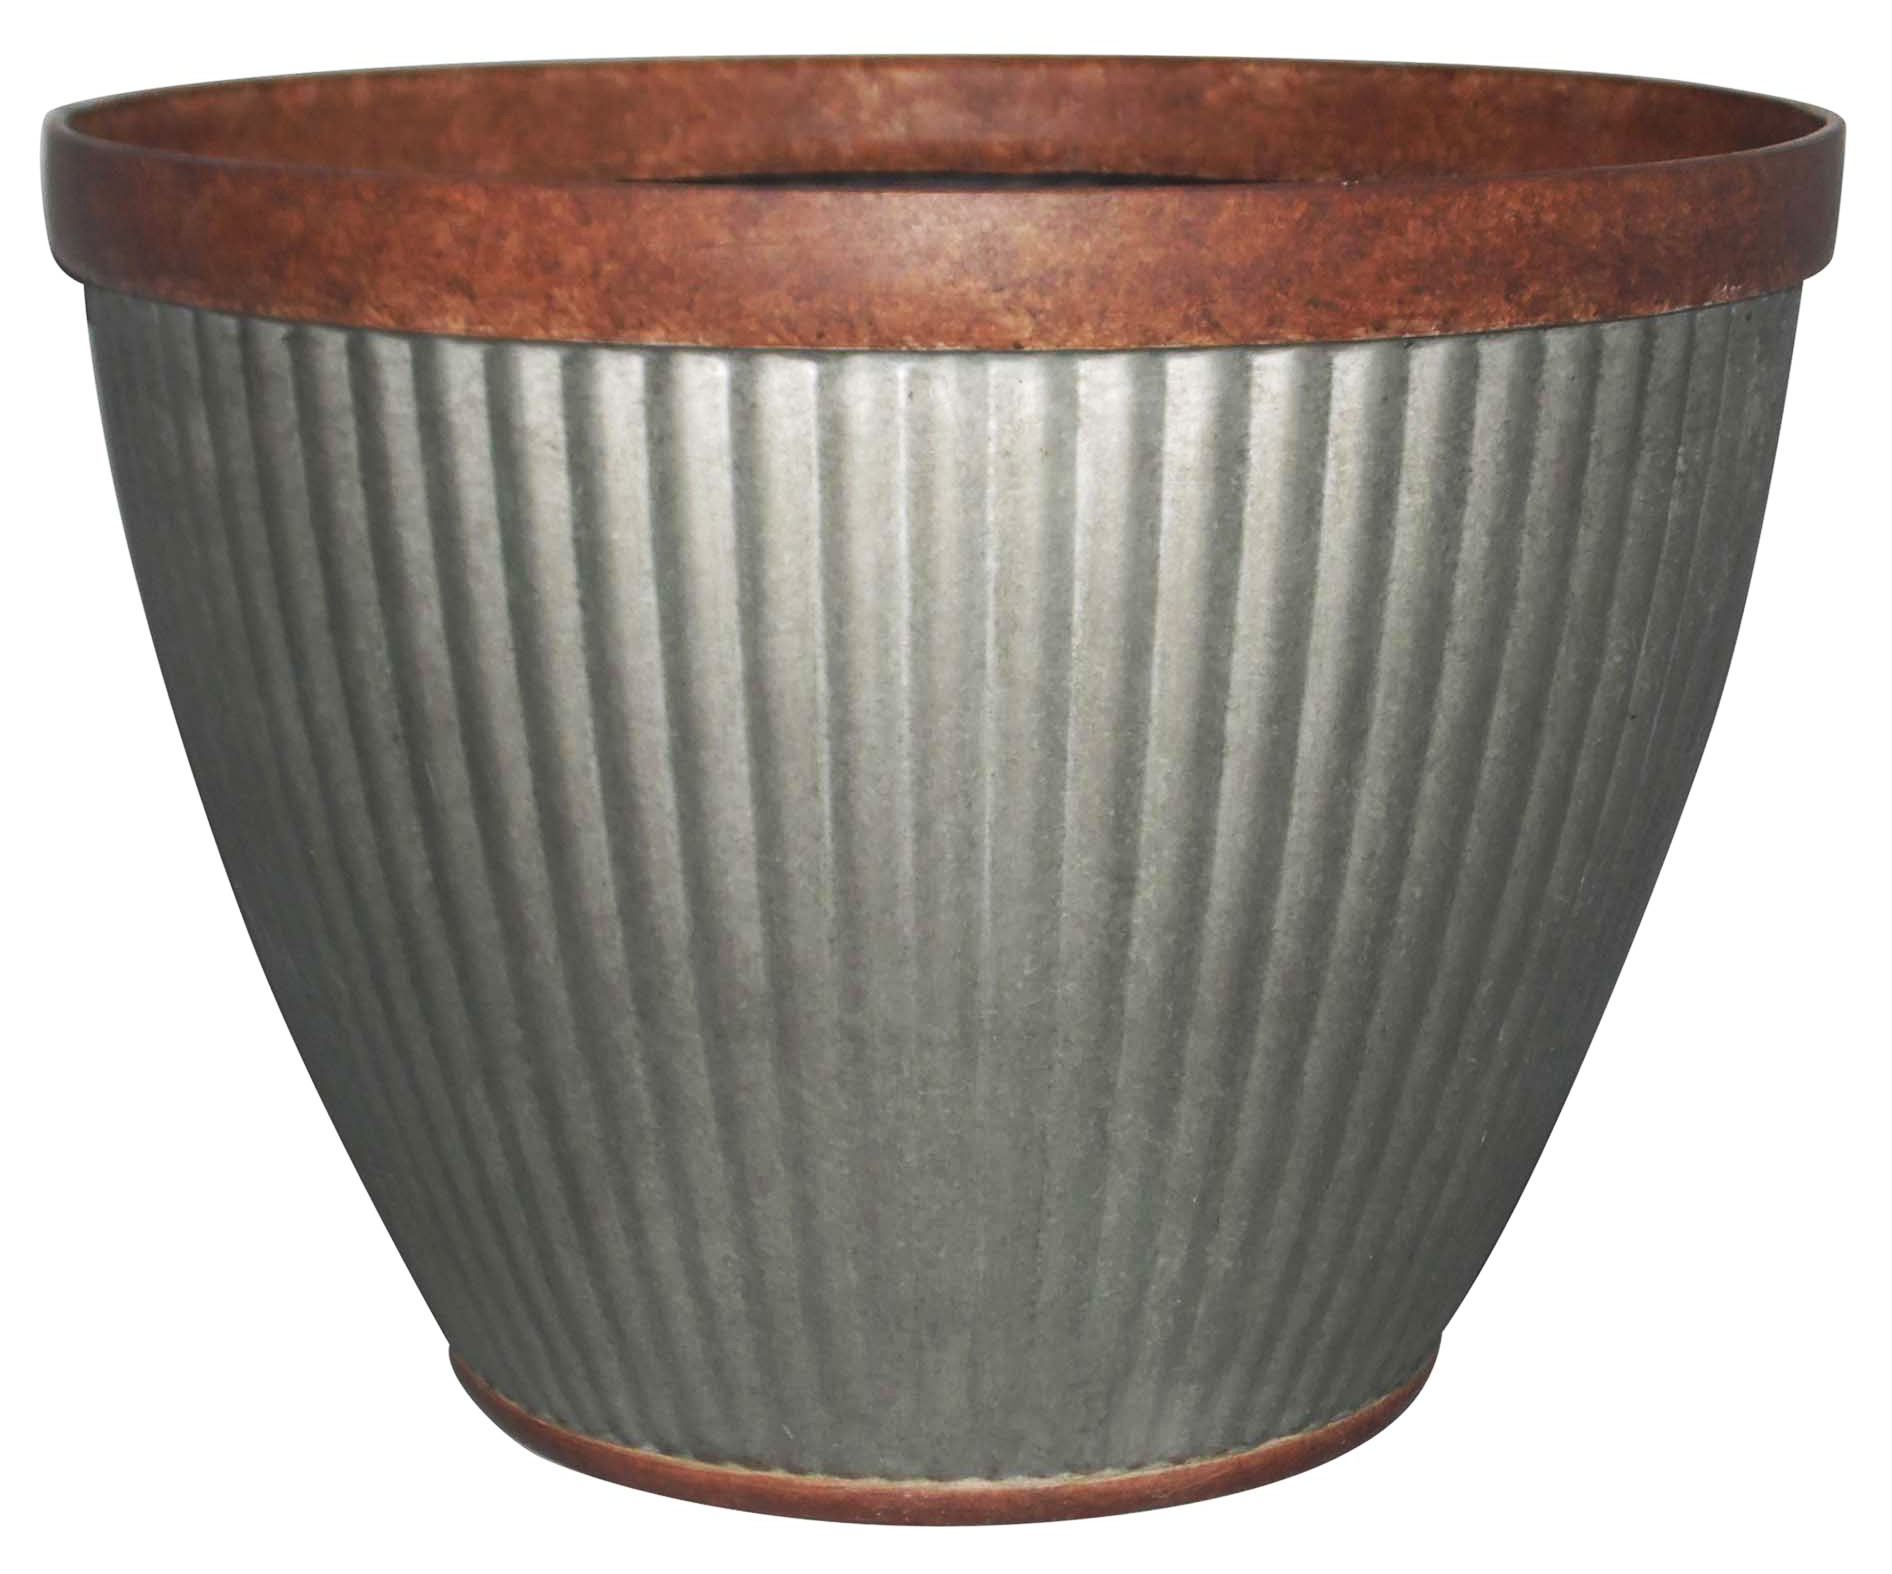 southern patio hdr 054795 15 x 11 rustic galvanized westlake round planter